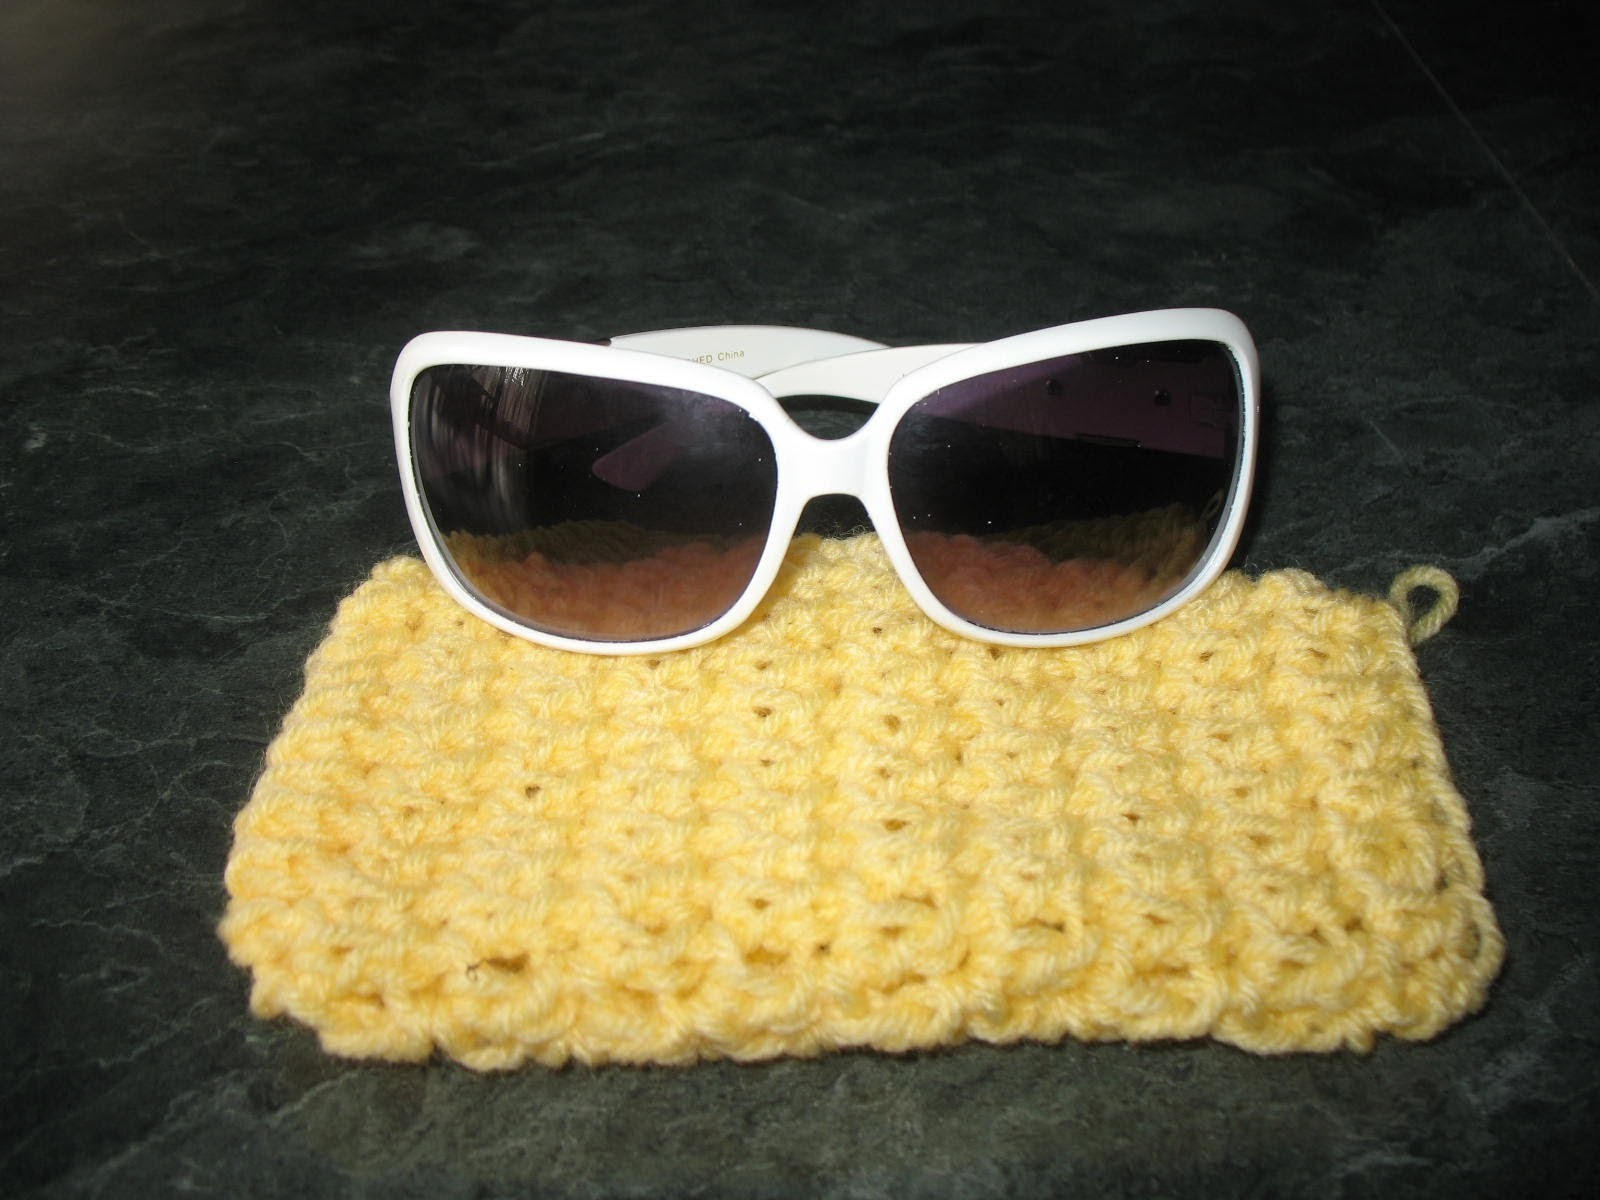 How to crochet a pouch bag for sunglasses